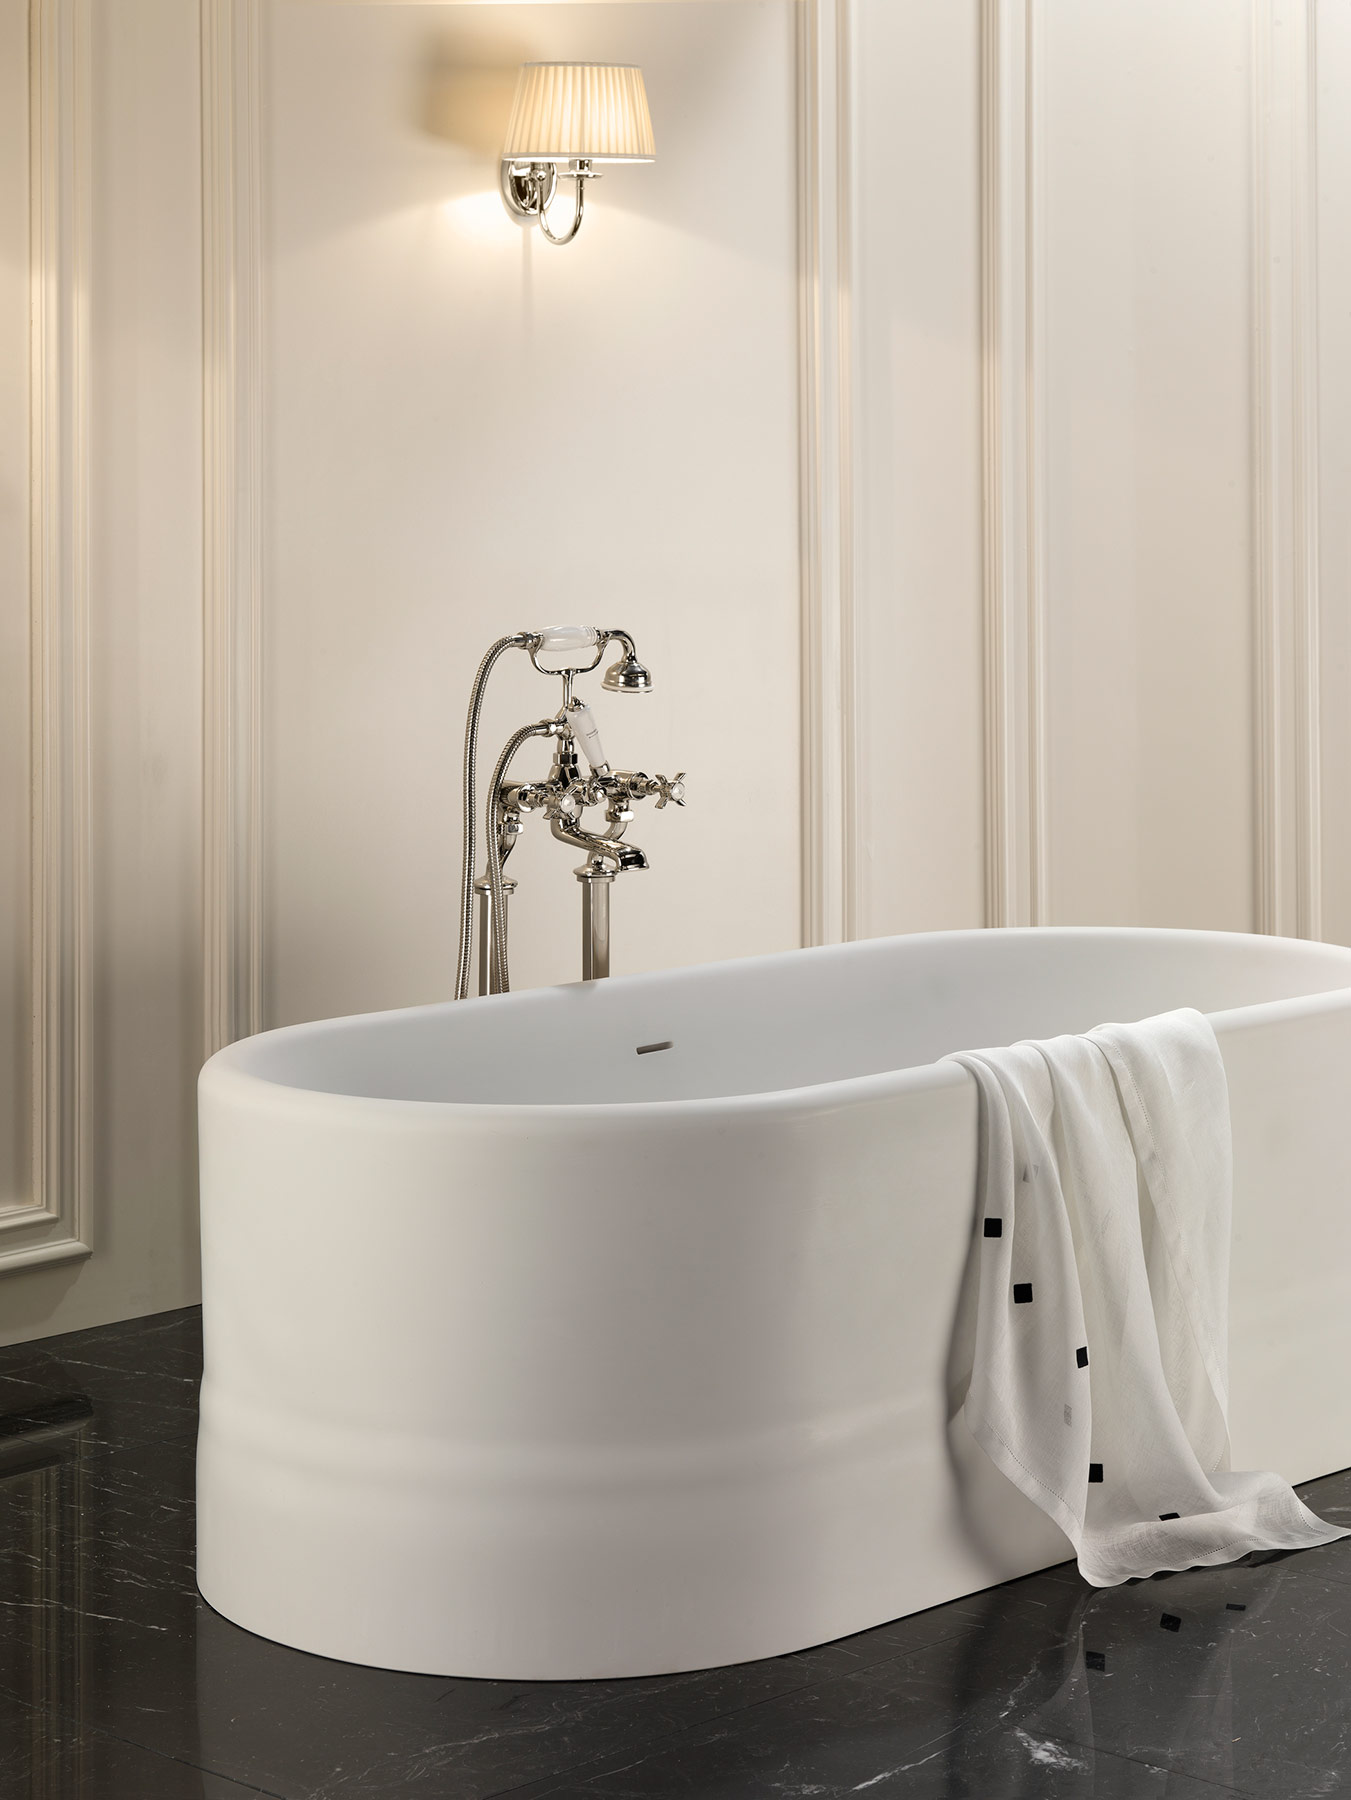 Transitional Diva Freestanding Bathtub